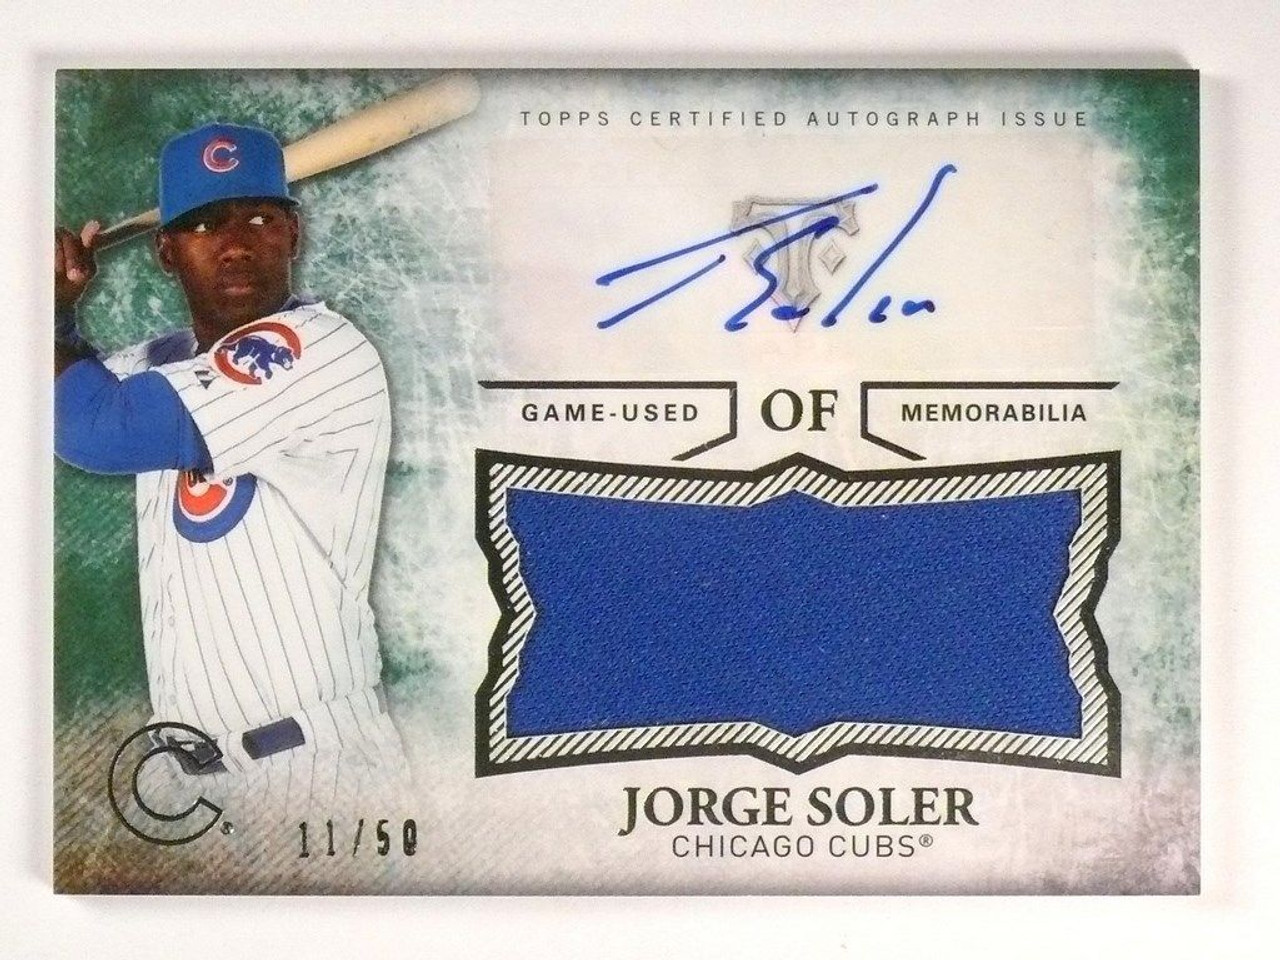 reputable site 9d781 9c745 SOLD 6495 2015 Triple Threads Jorge Soler Unity Jersey Auto Emerald #D11/50  #UAJRJSR *5084